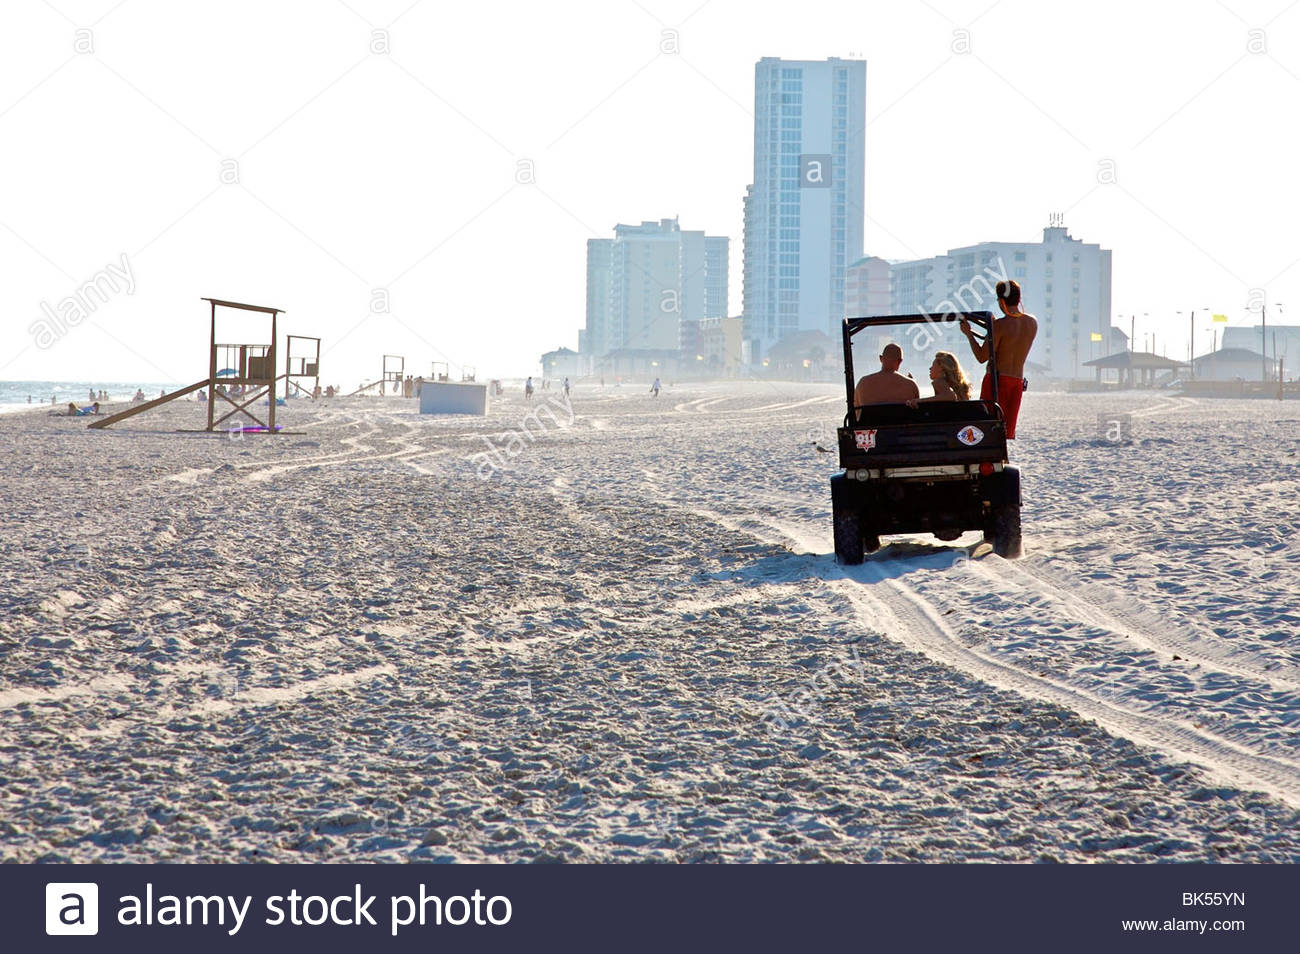 lifeguard beach patrol in motorized four wheel drive vehicle on gulf